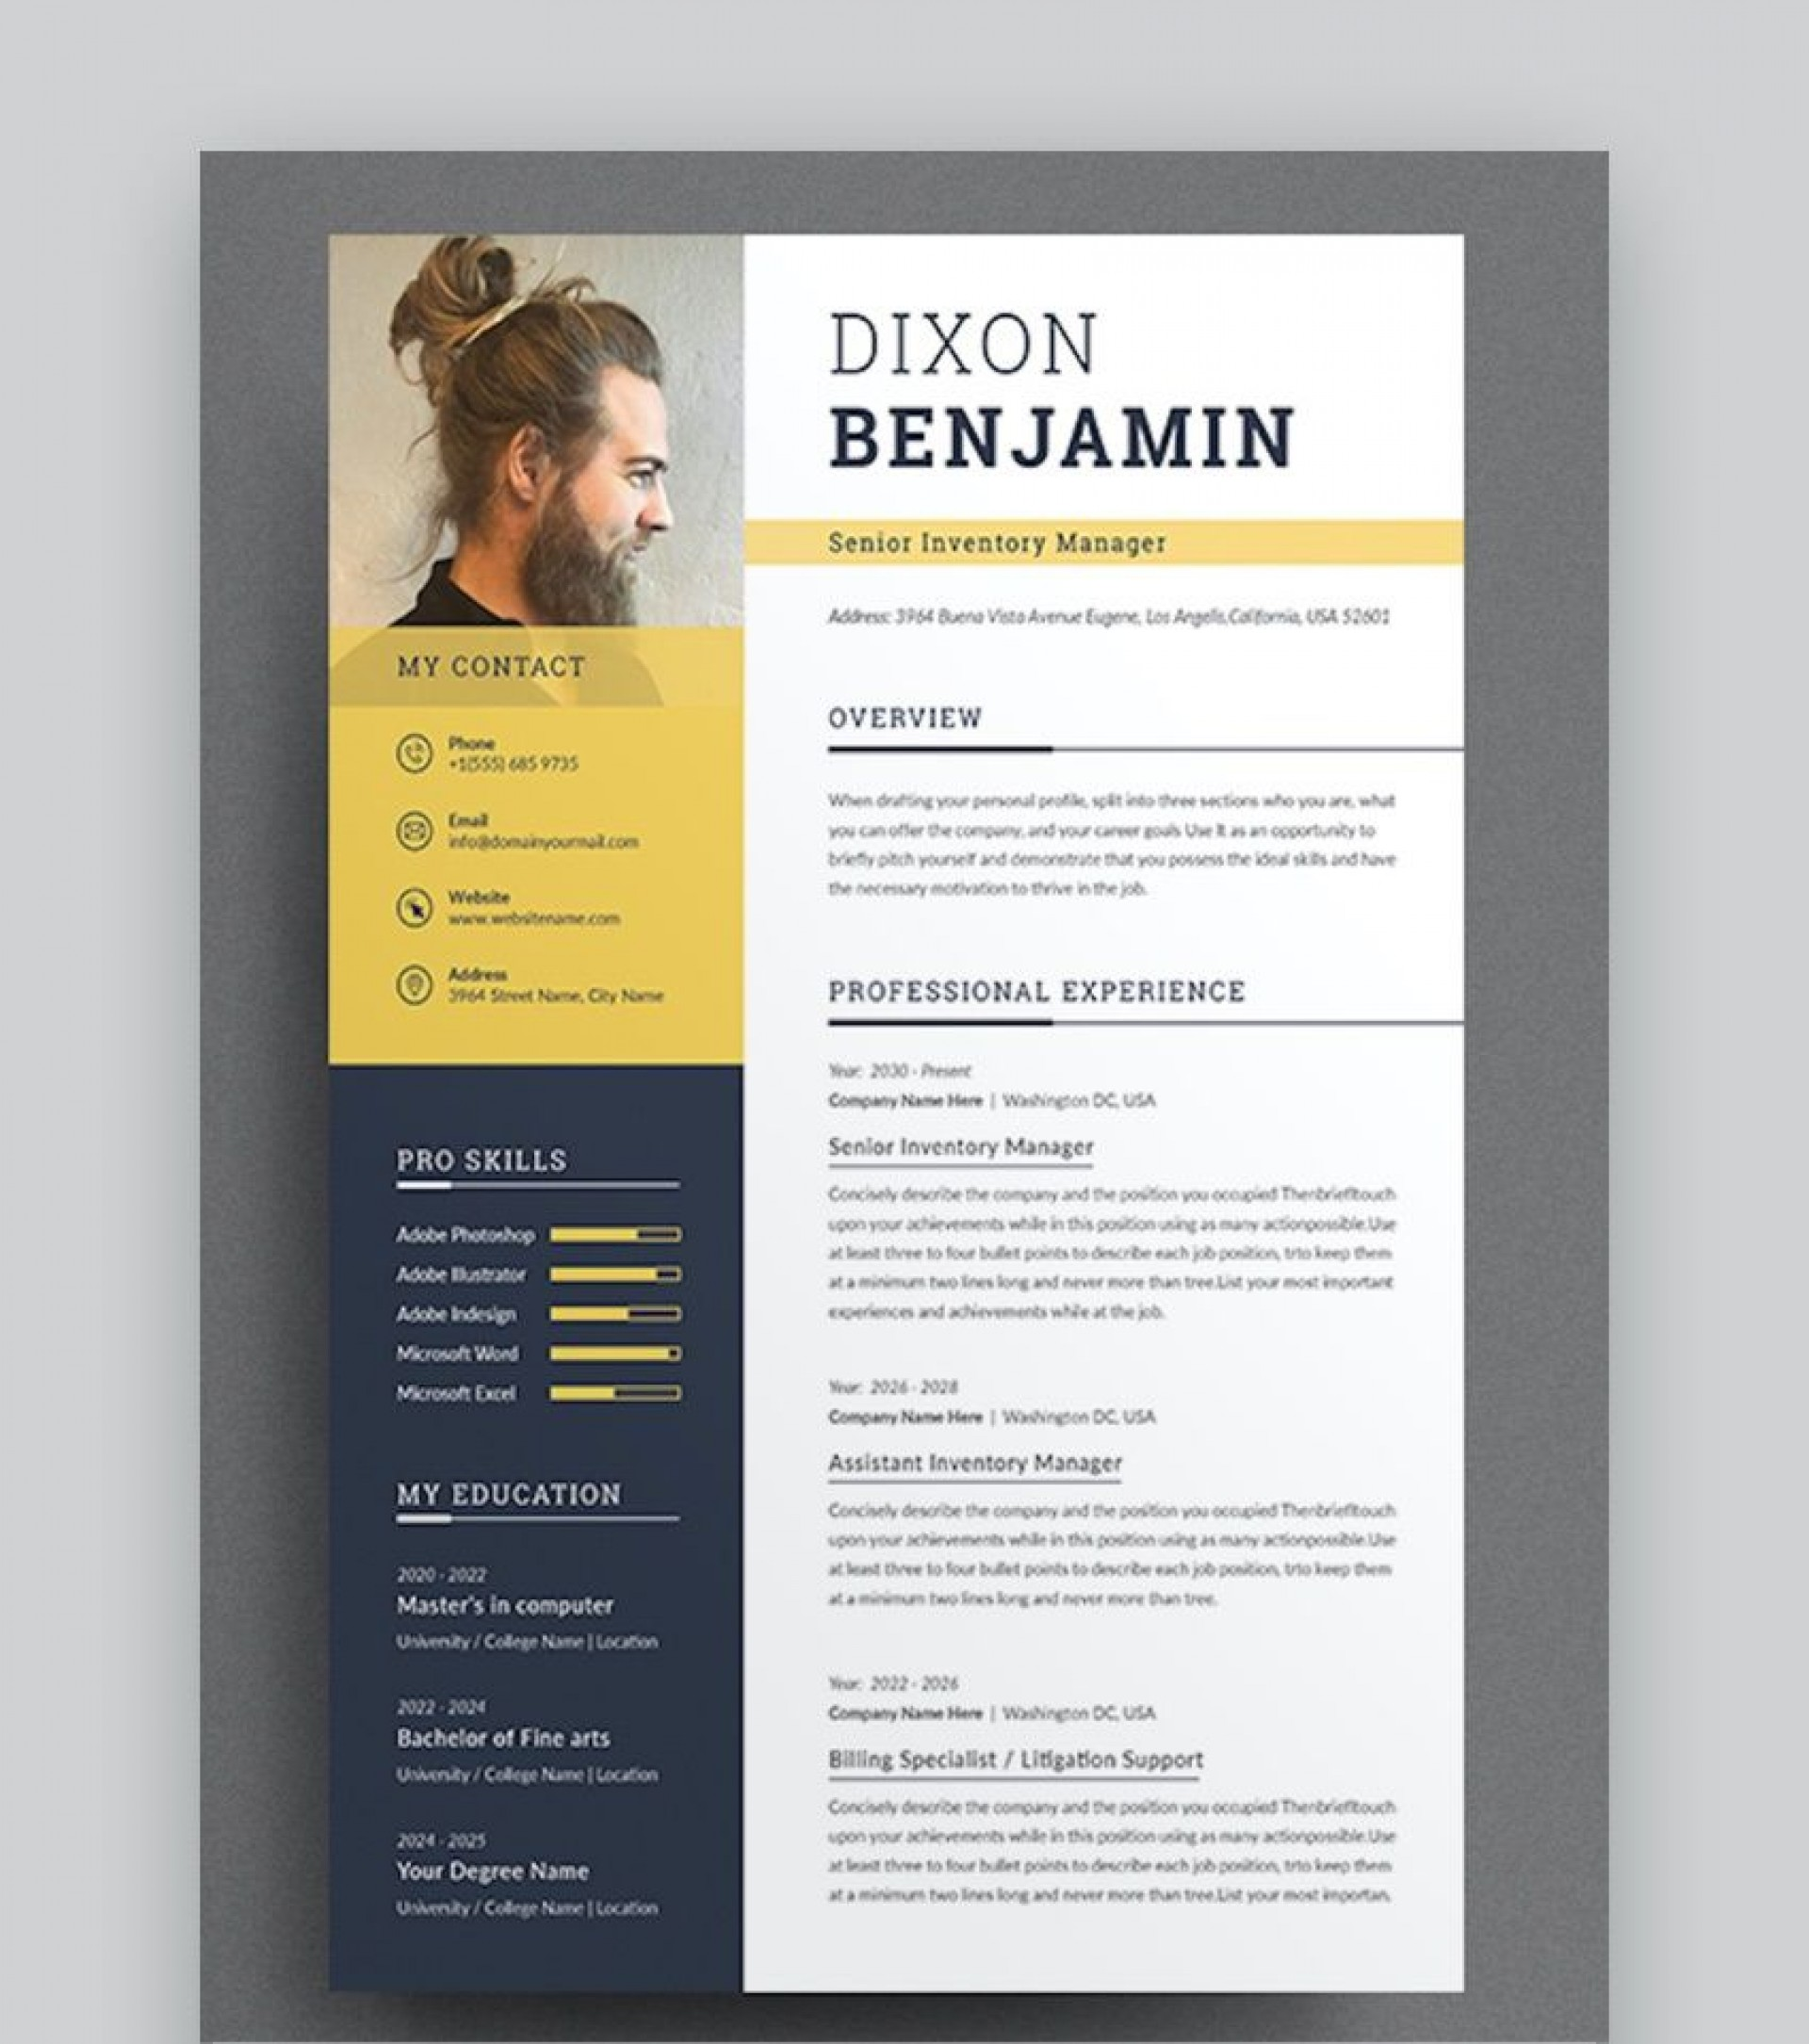 005 Unbelievable Creative Resume Template M Word Free High Definition 1920